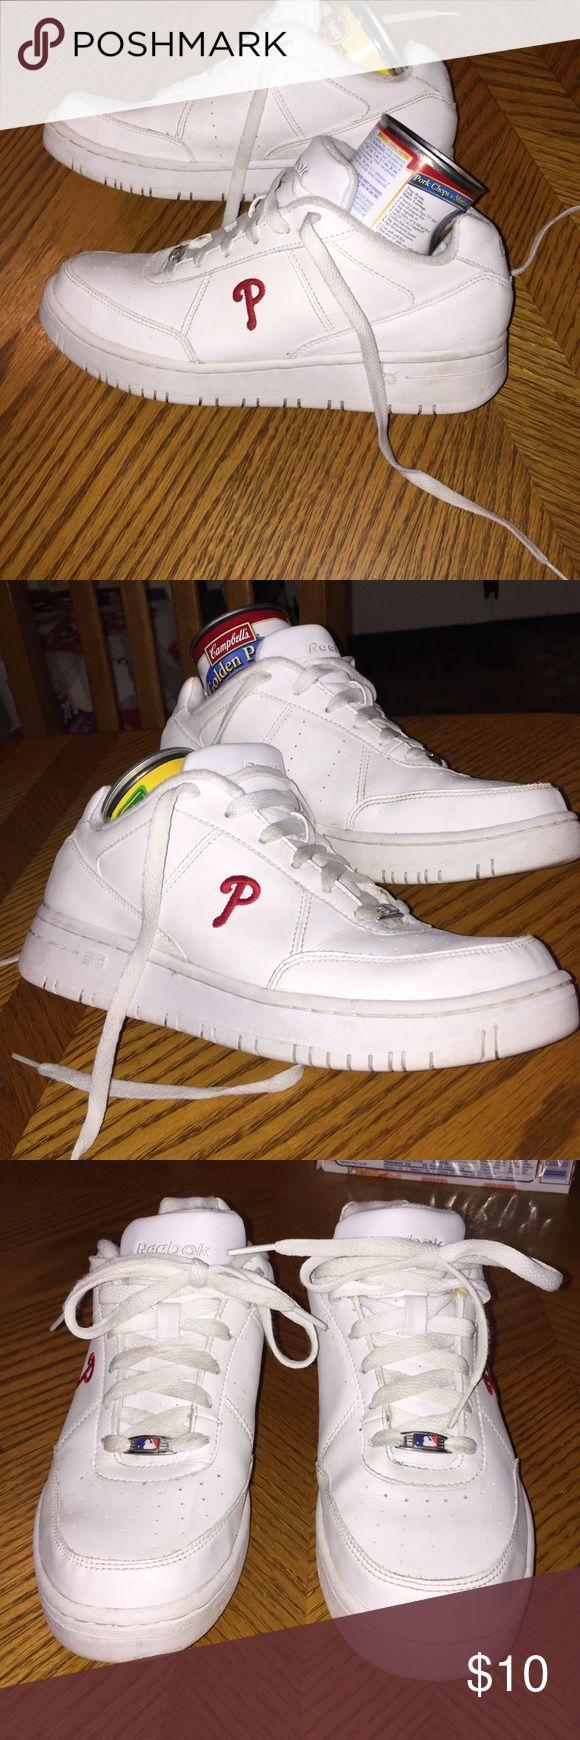 "Reebok ""Phillies""  tennis sneakers Reebok white ""Phillies"" sneakers in very good condition and very clean size 6 ladies. This is a very good deal for $10. reebok Shoes Sneakers"